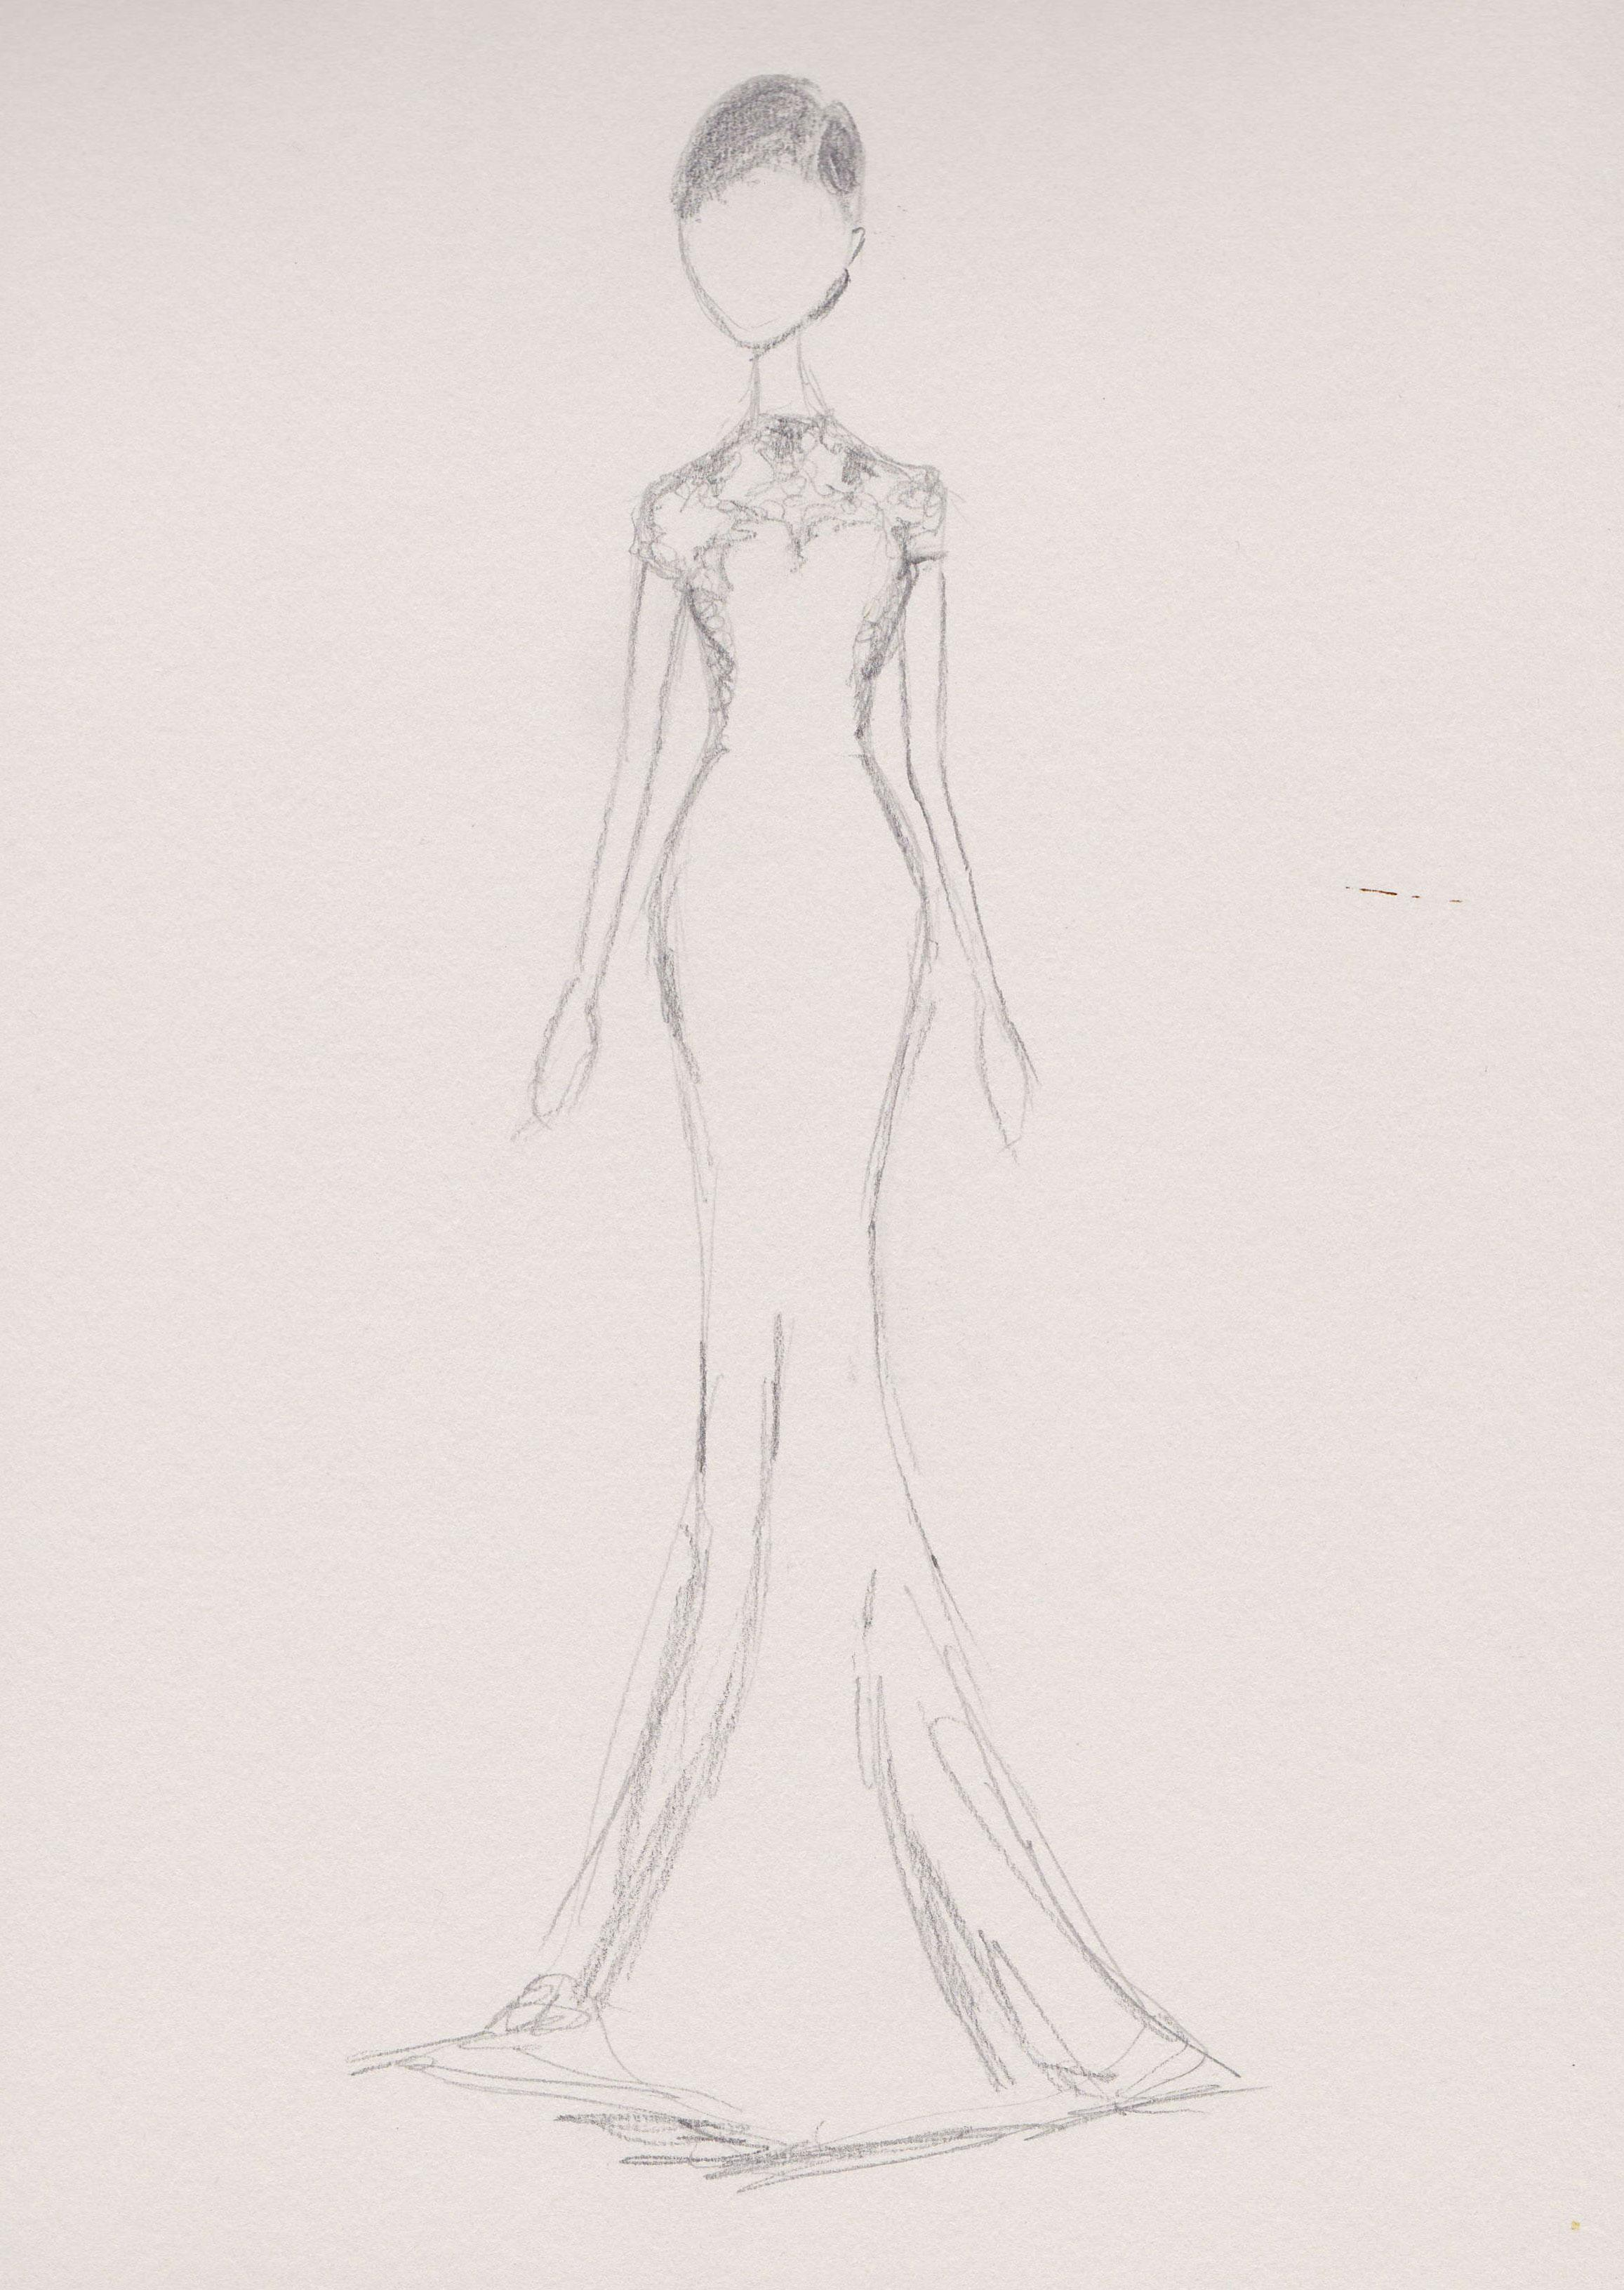 SKETCHES - Ethereal - image 2 - student project